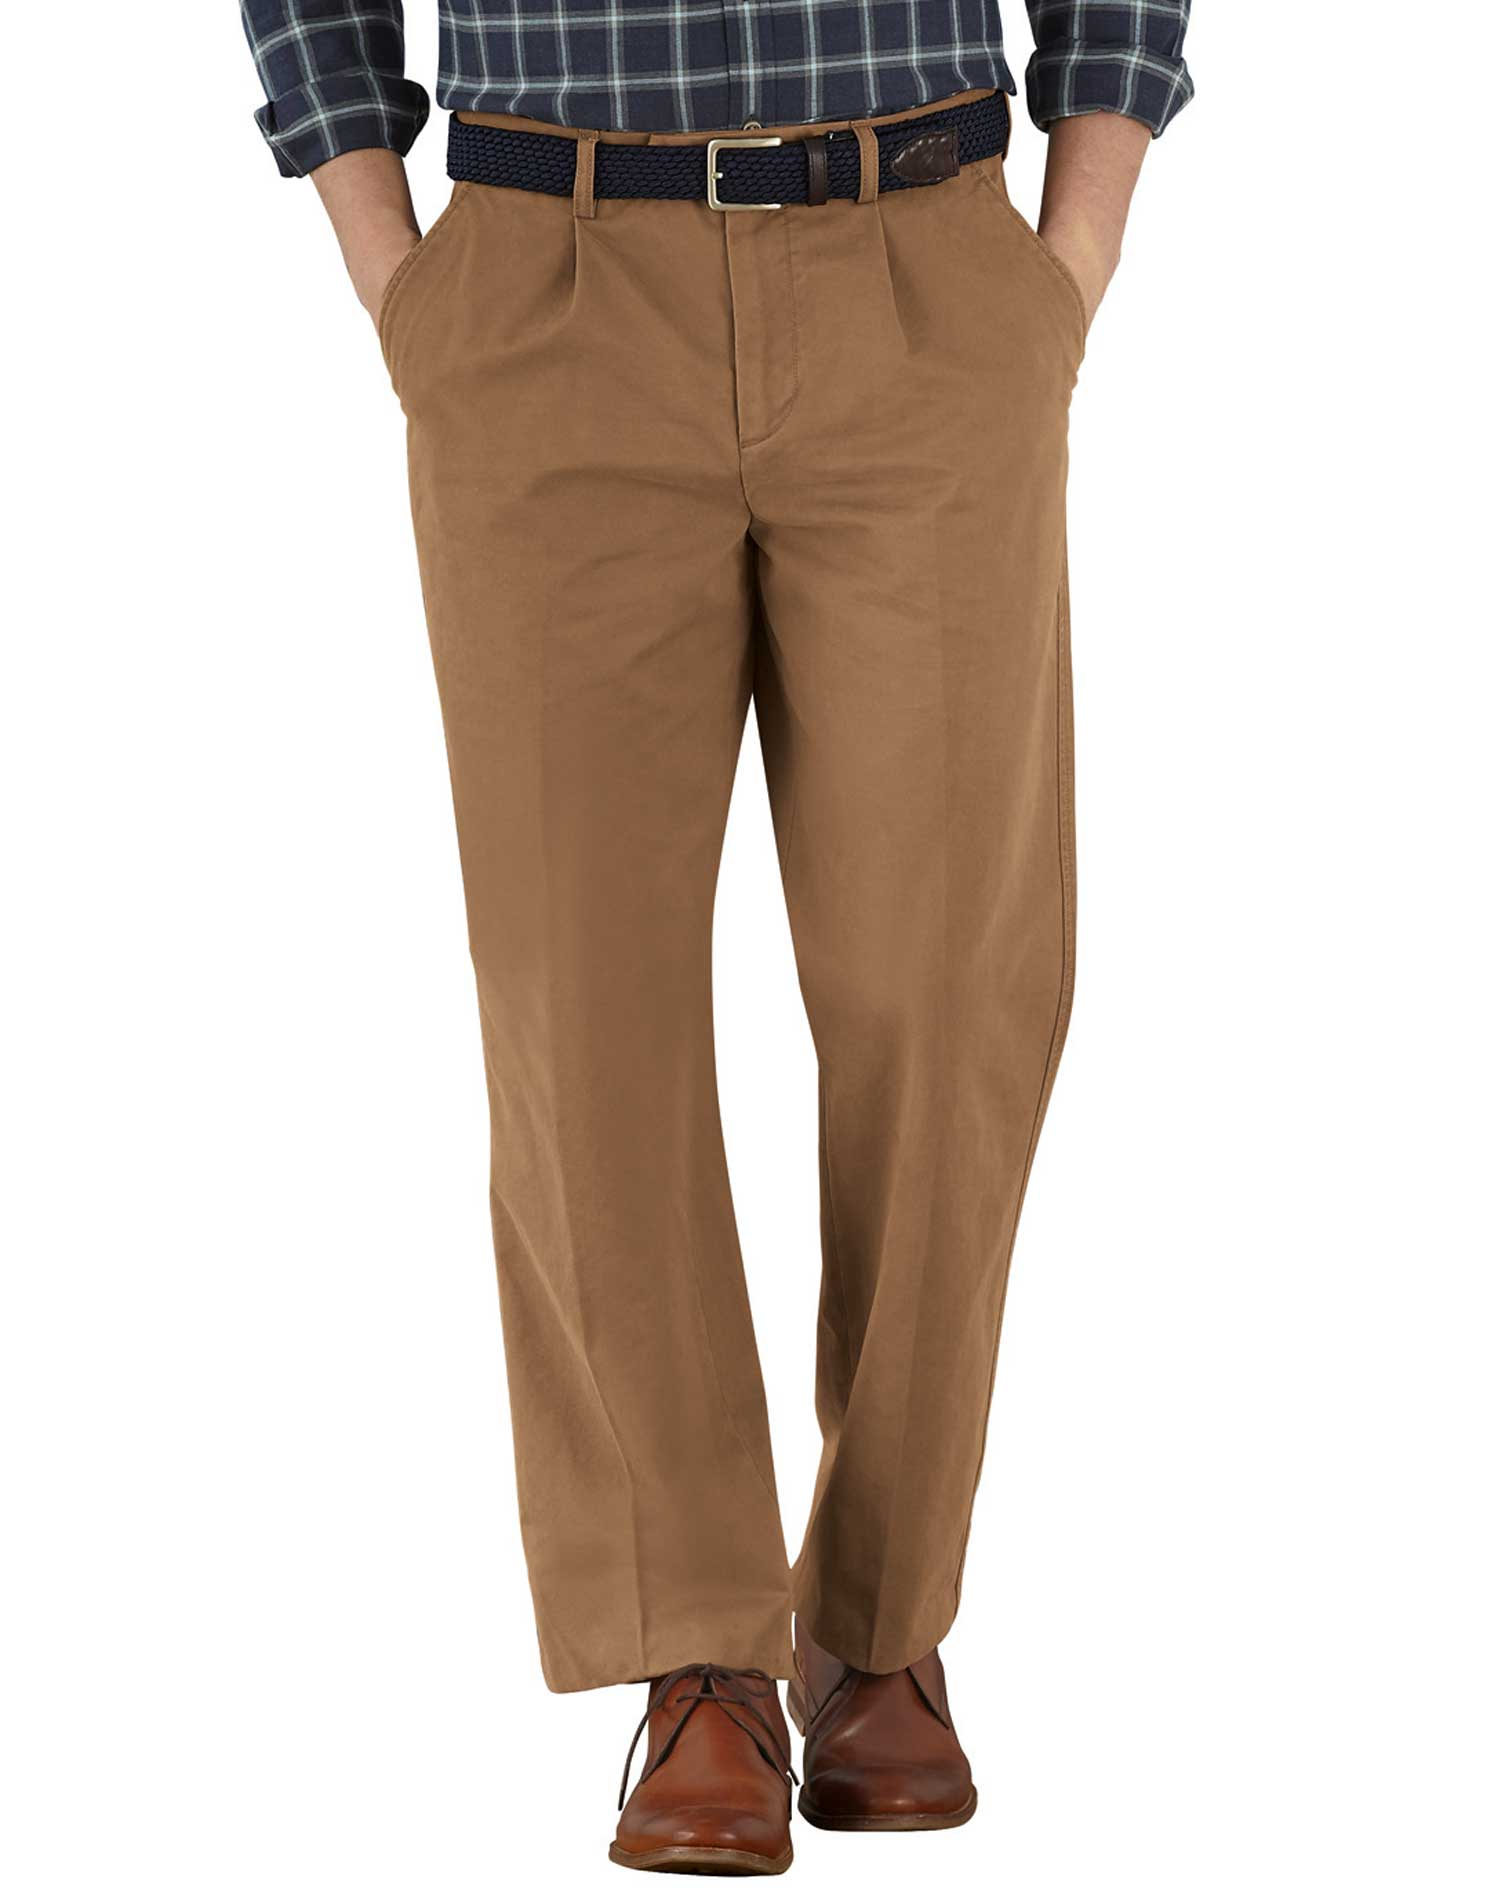 Camel Classic Fit Single Pleat Cotton Chino Trousers Size W40 L30 by Charles Tyrwhitt